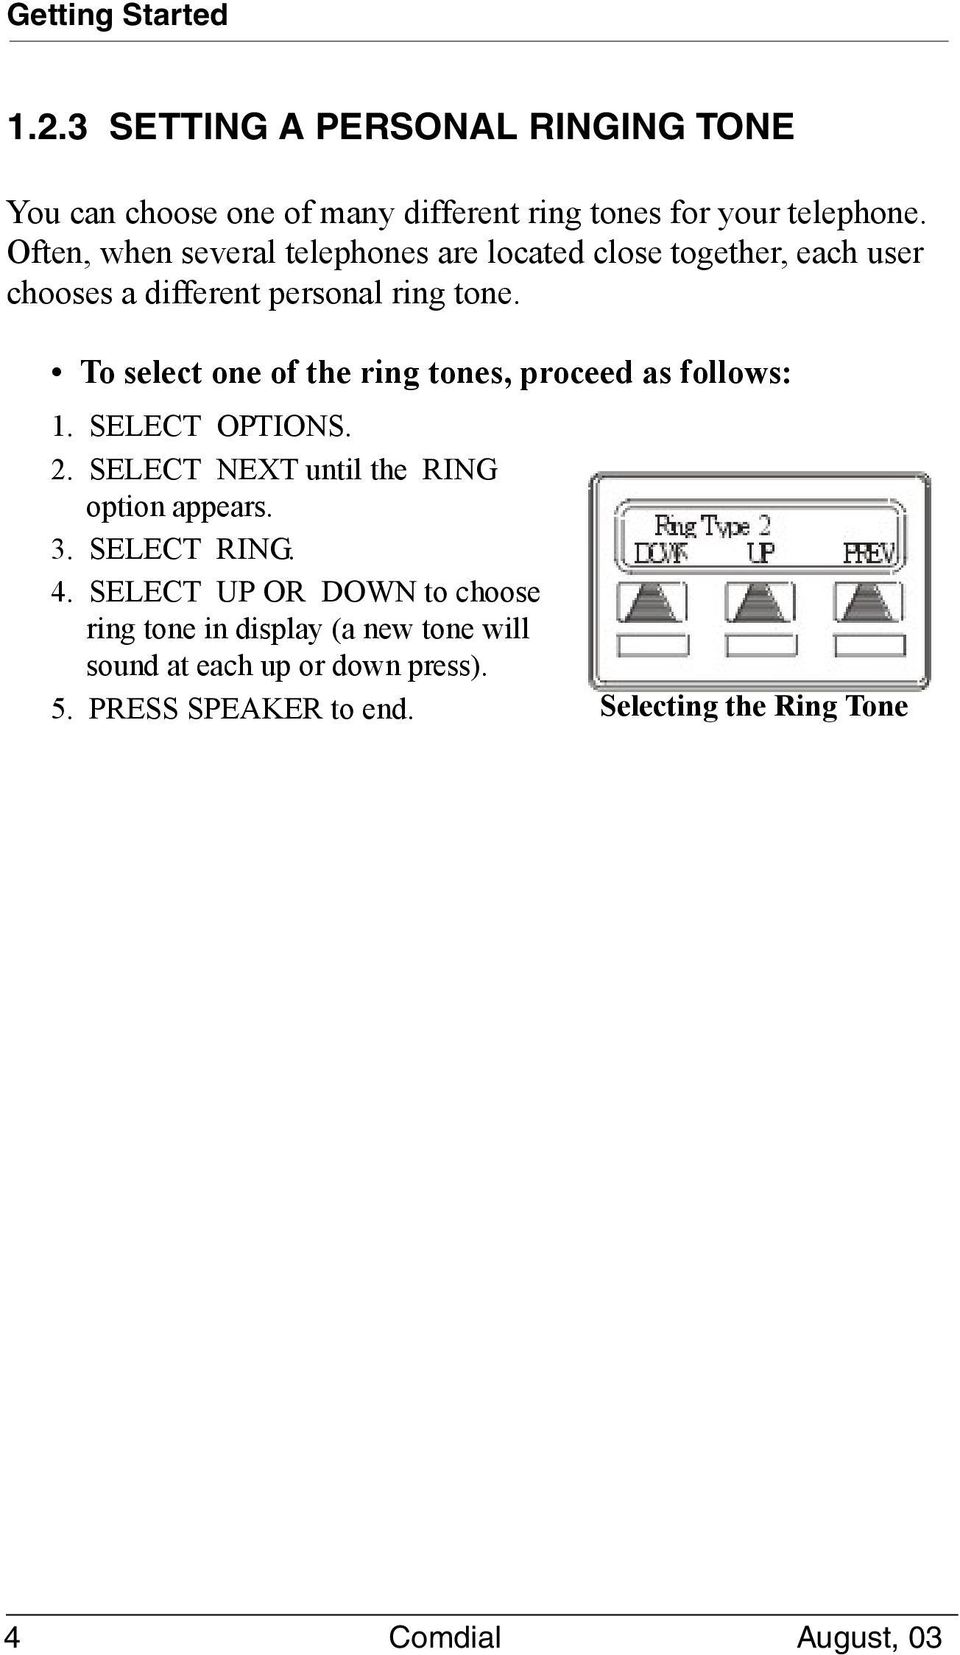 To select one of the ring tones, proceed as follows: 1. SELECT OPTIONS. 2. SELECT NEXT until the RING option appears. 3. SELECT RING.